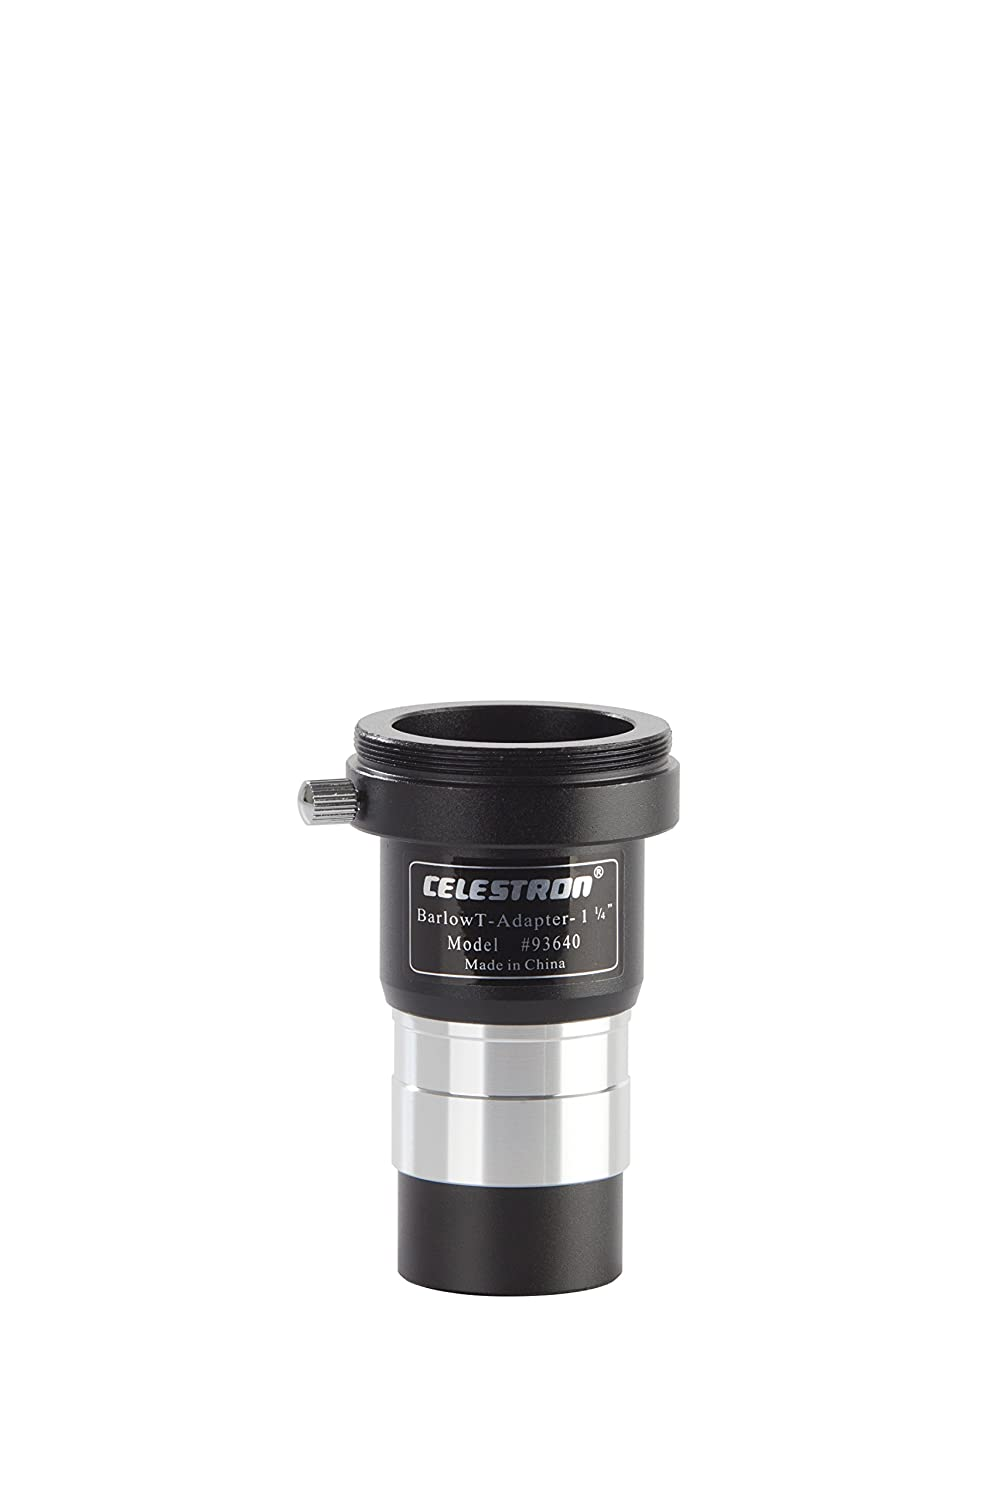 Celestron 93640 T-Adapter/Barlow Lens Universal-1.25' Telescope and Microscope (3-In-1) Accessories, Black 93640-CGL